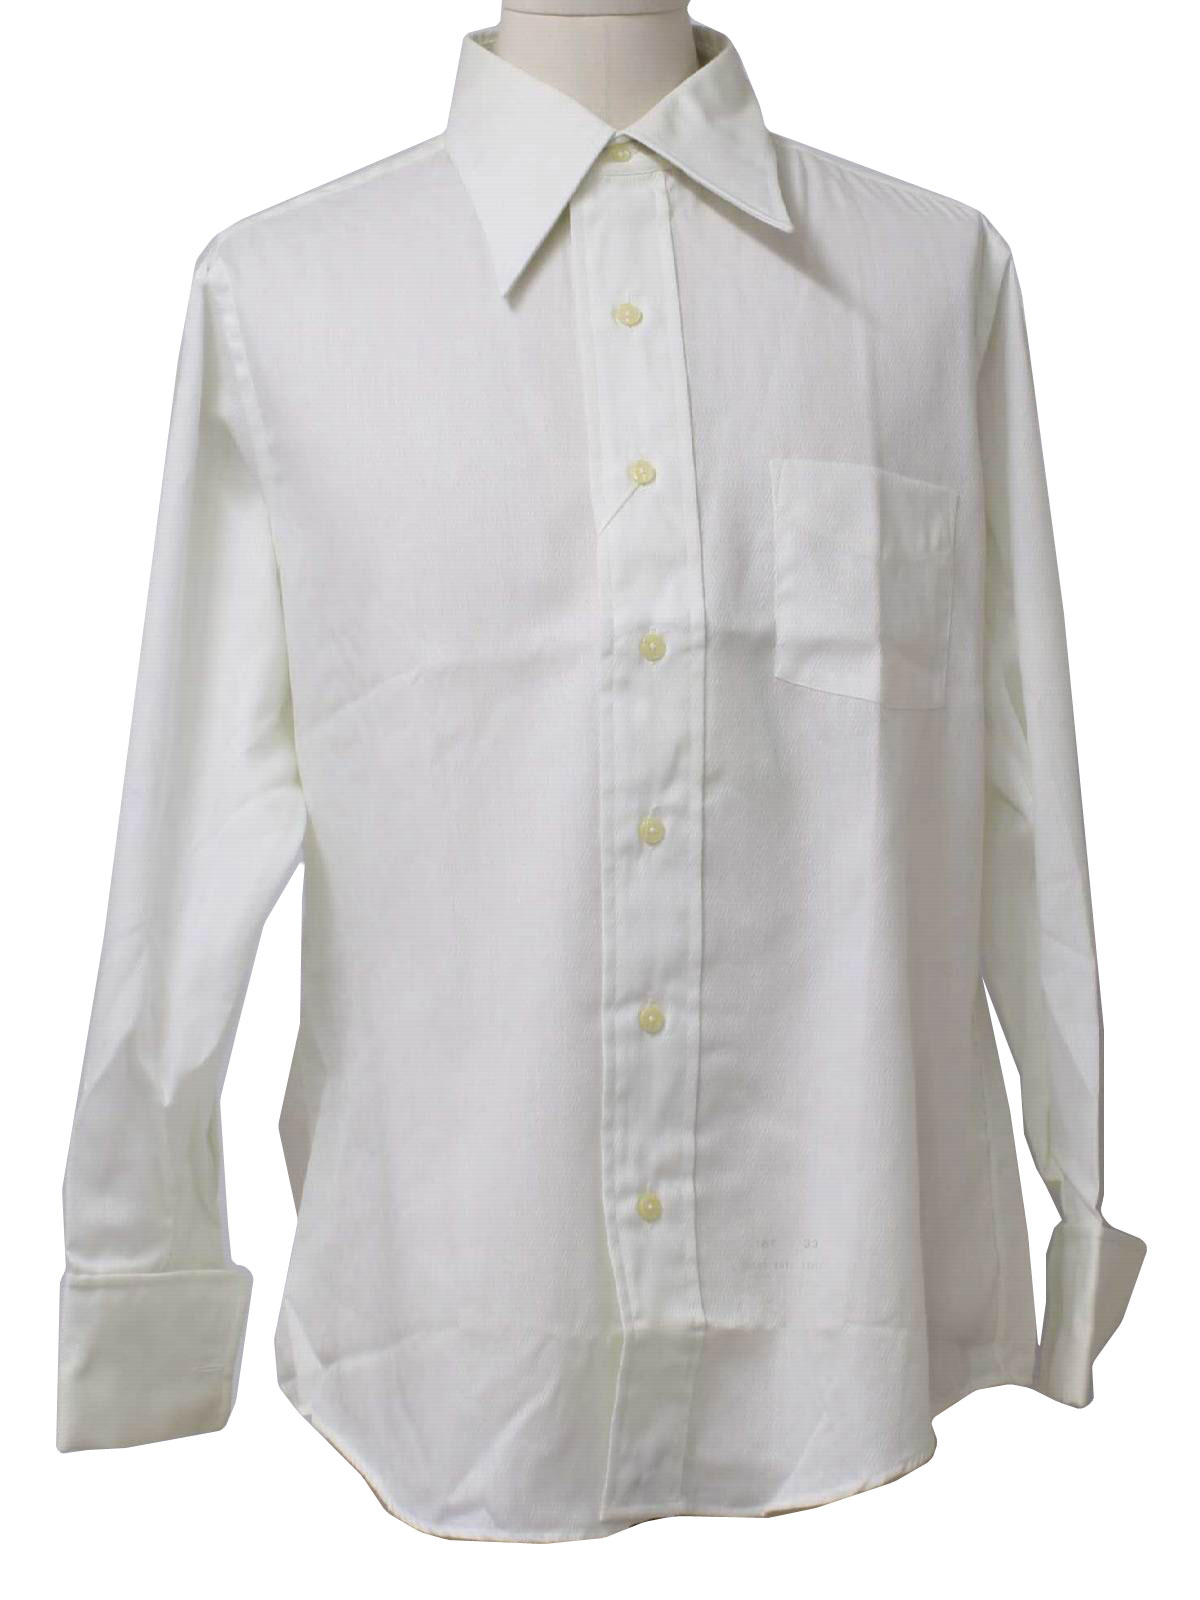 Damon 1970s Vintage Shirt 70s Damon Mens White